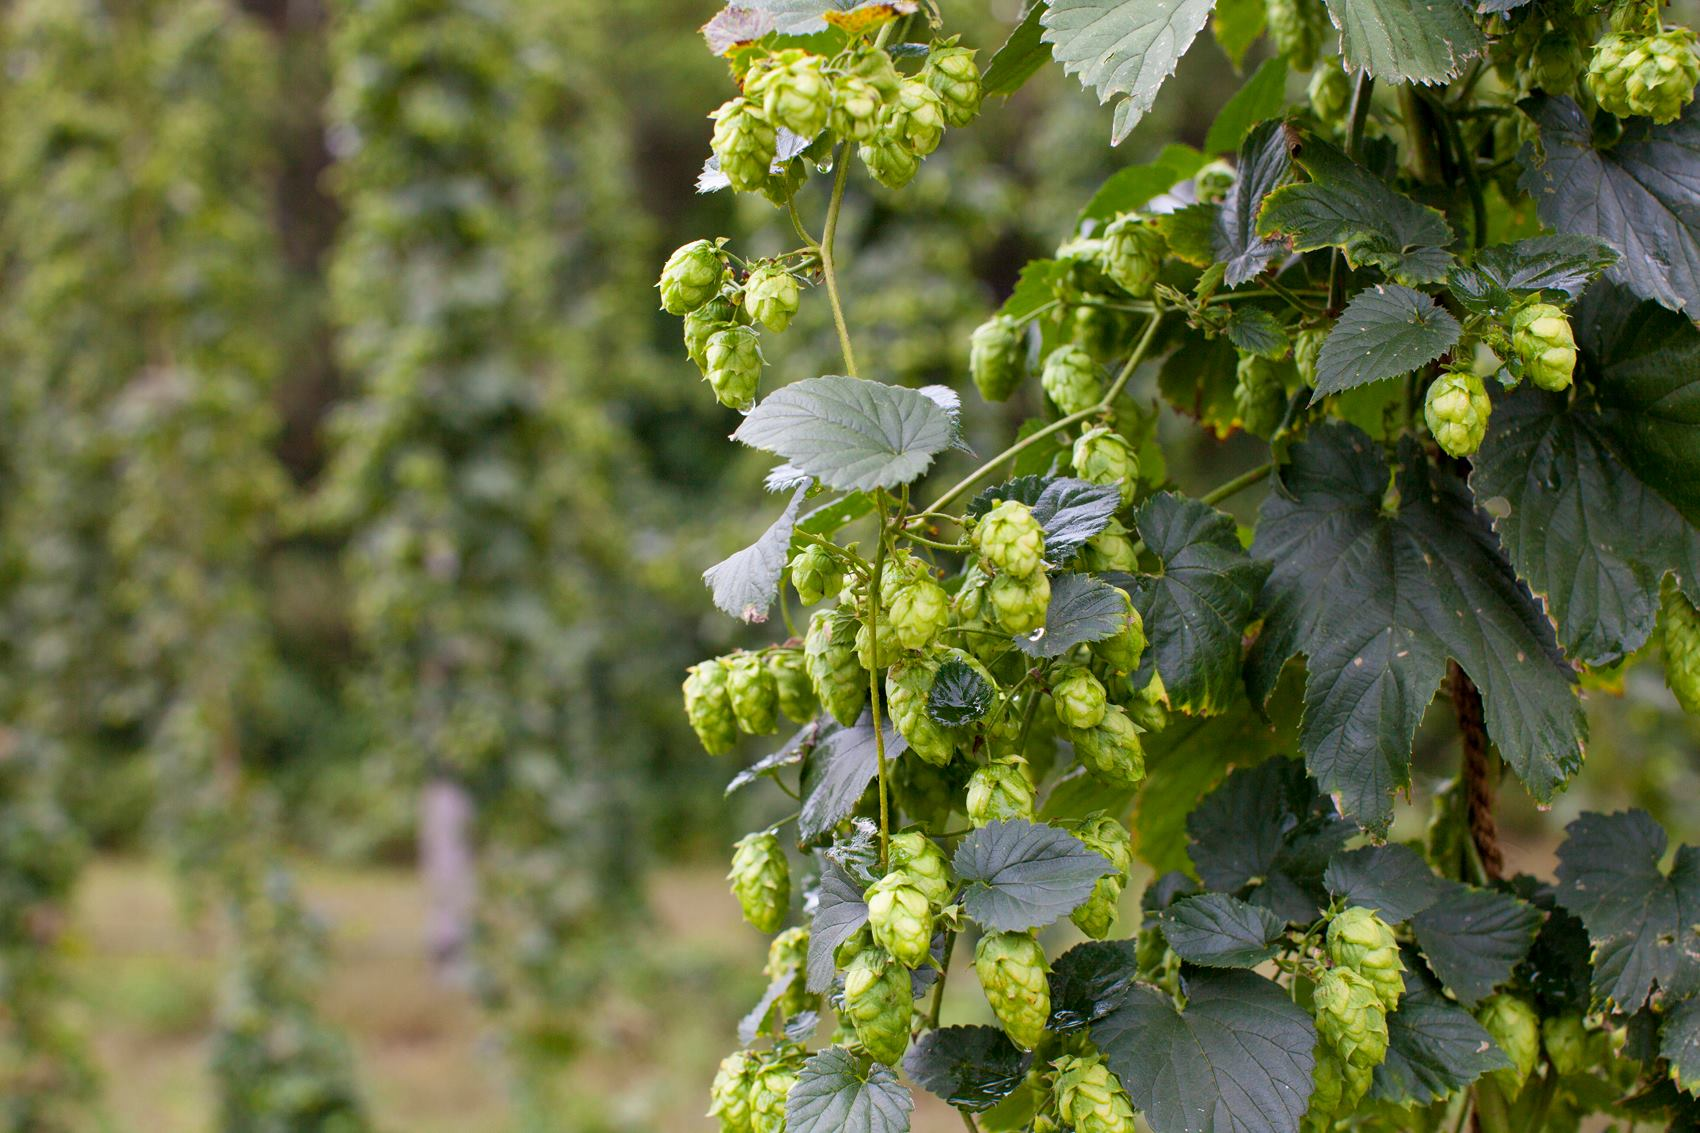 Brewers Association and the USDA are embarking on a public hops breeding program that aims to develop disease-resistant strains of hops to benefit hop growers in the U.S. // Photo via Mighty Axe Hops' Facebook page